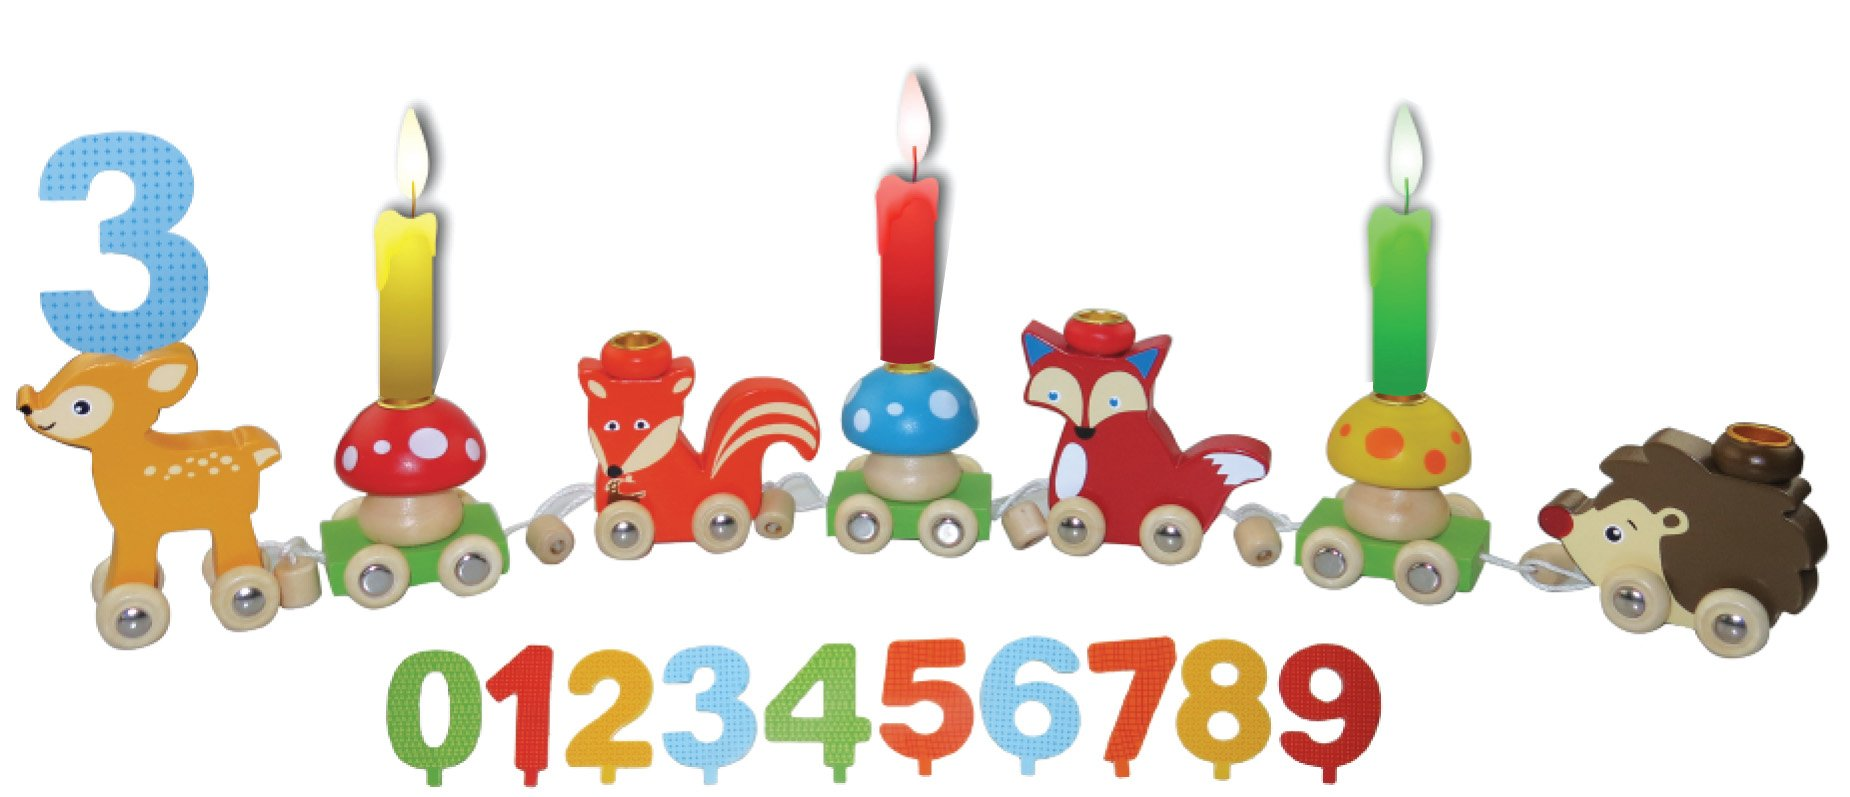 MAGNI Magnetic Numbers 0-9Included. 2610Birthdaytrain with Friends of The Forest- by MAGNI